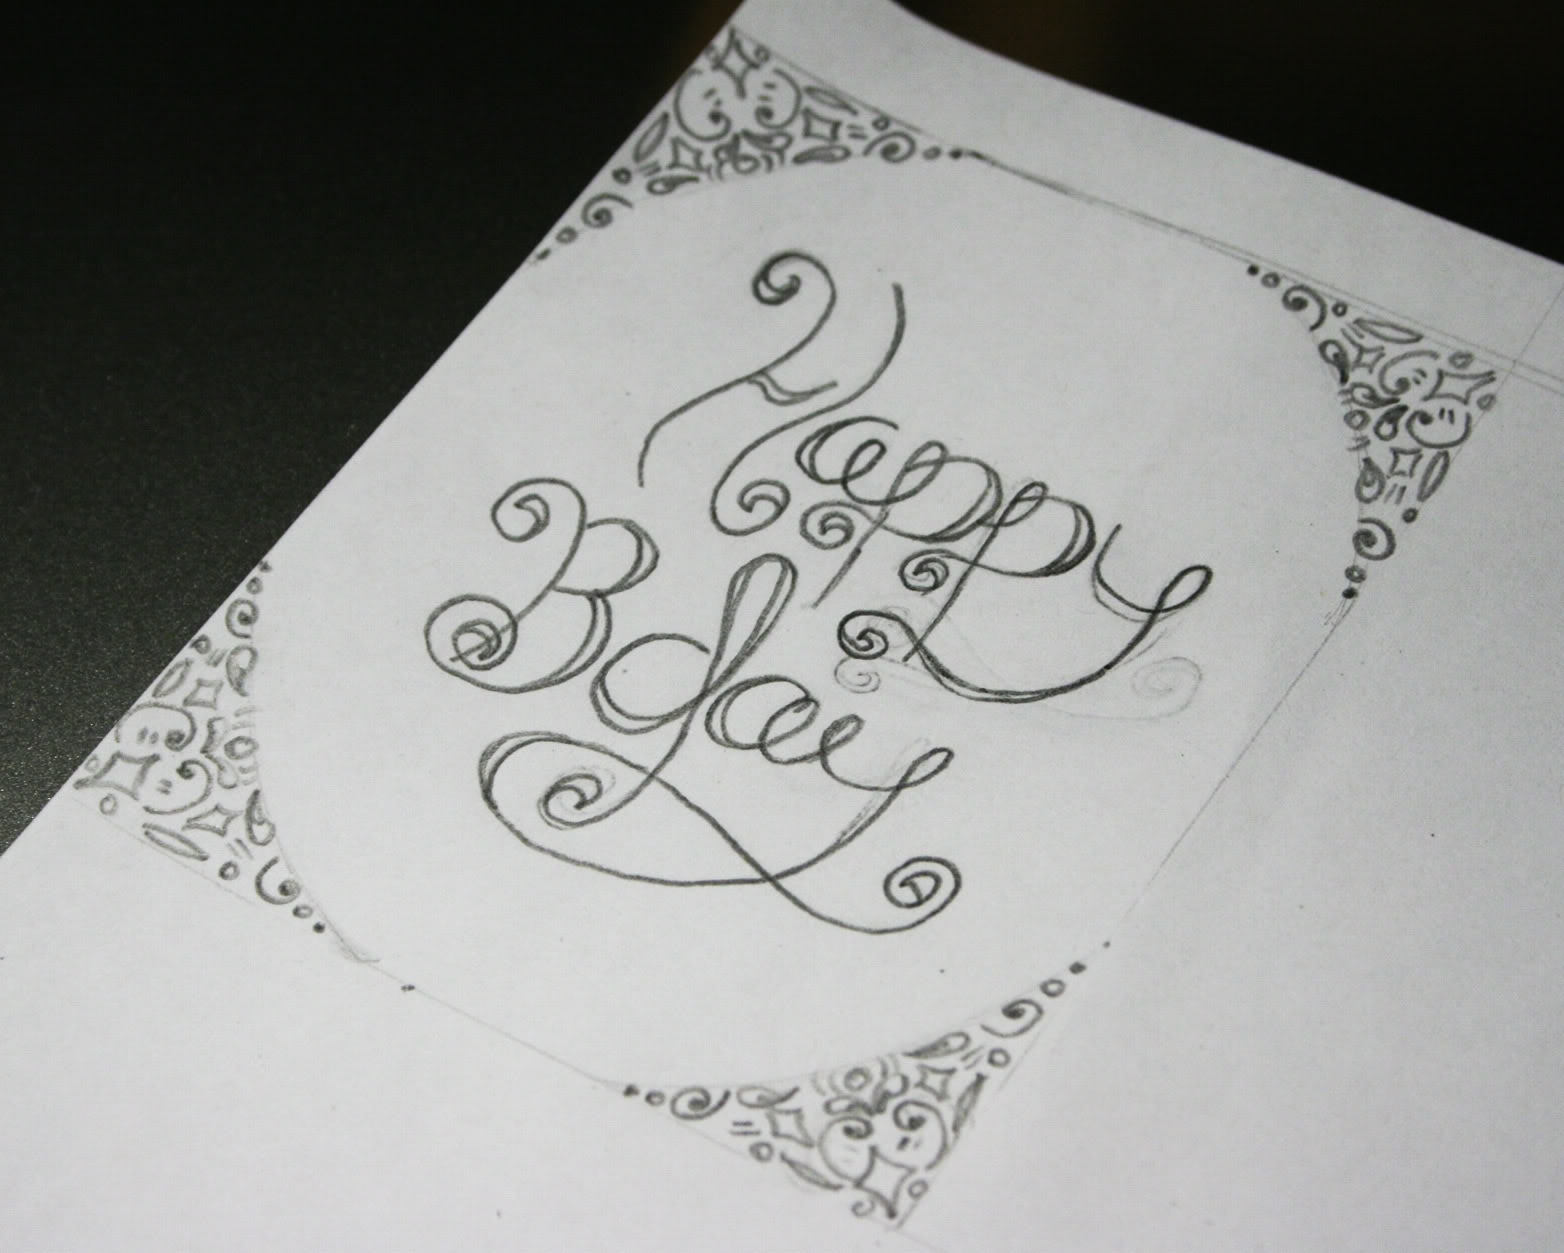 birthday card pictures to draw ; Cool-Designs-For-A-Birthday-Card-is-glamorous-ideas-which-can-be-applied-into-your-birthday-Card-5